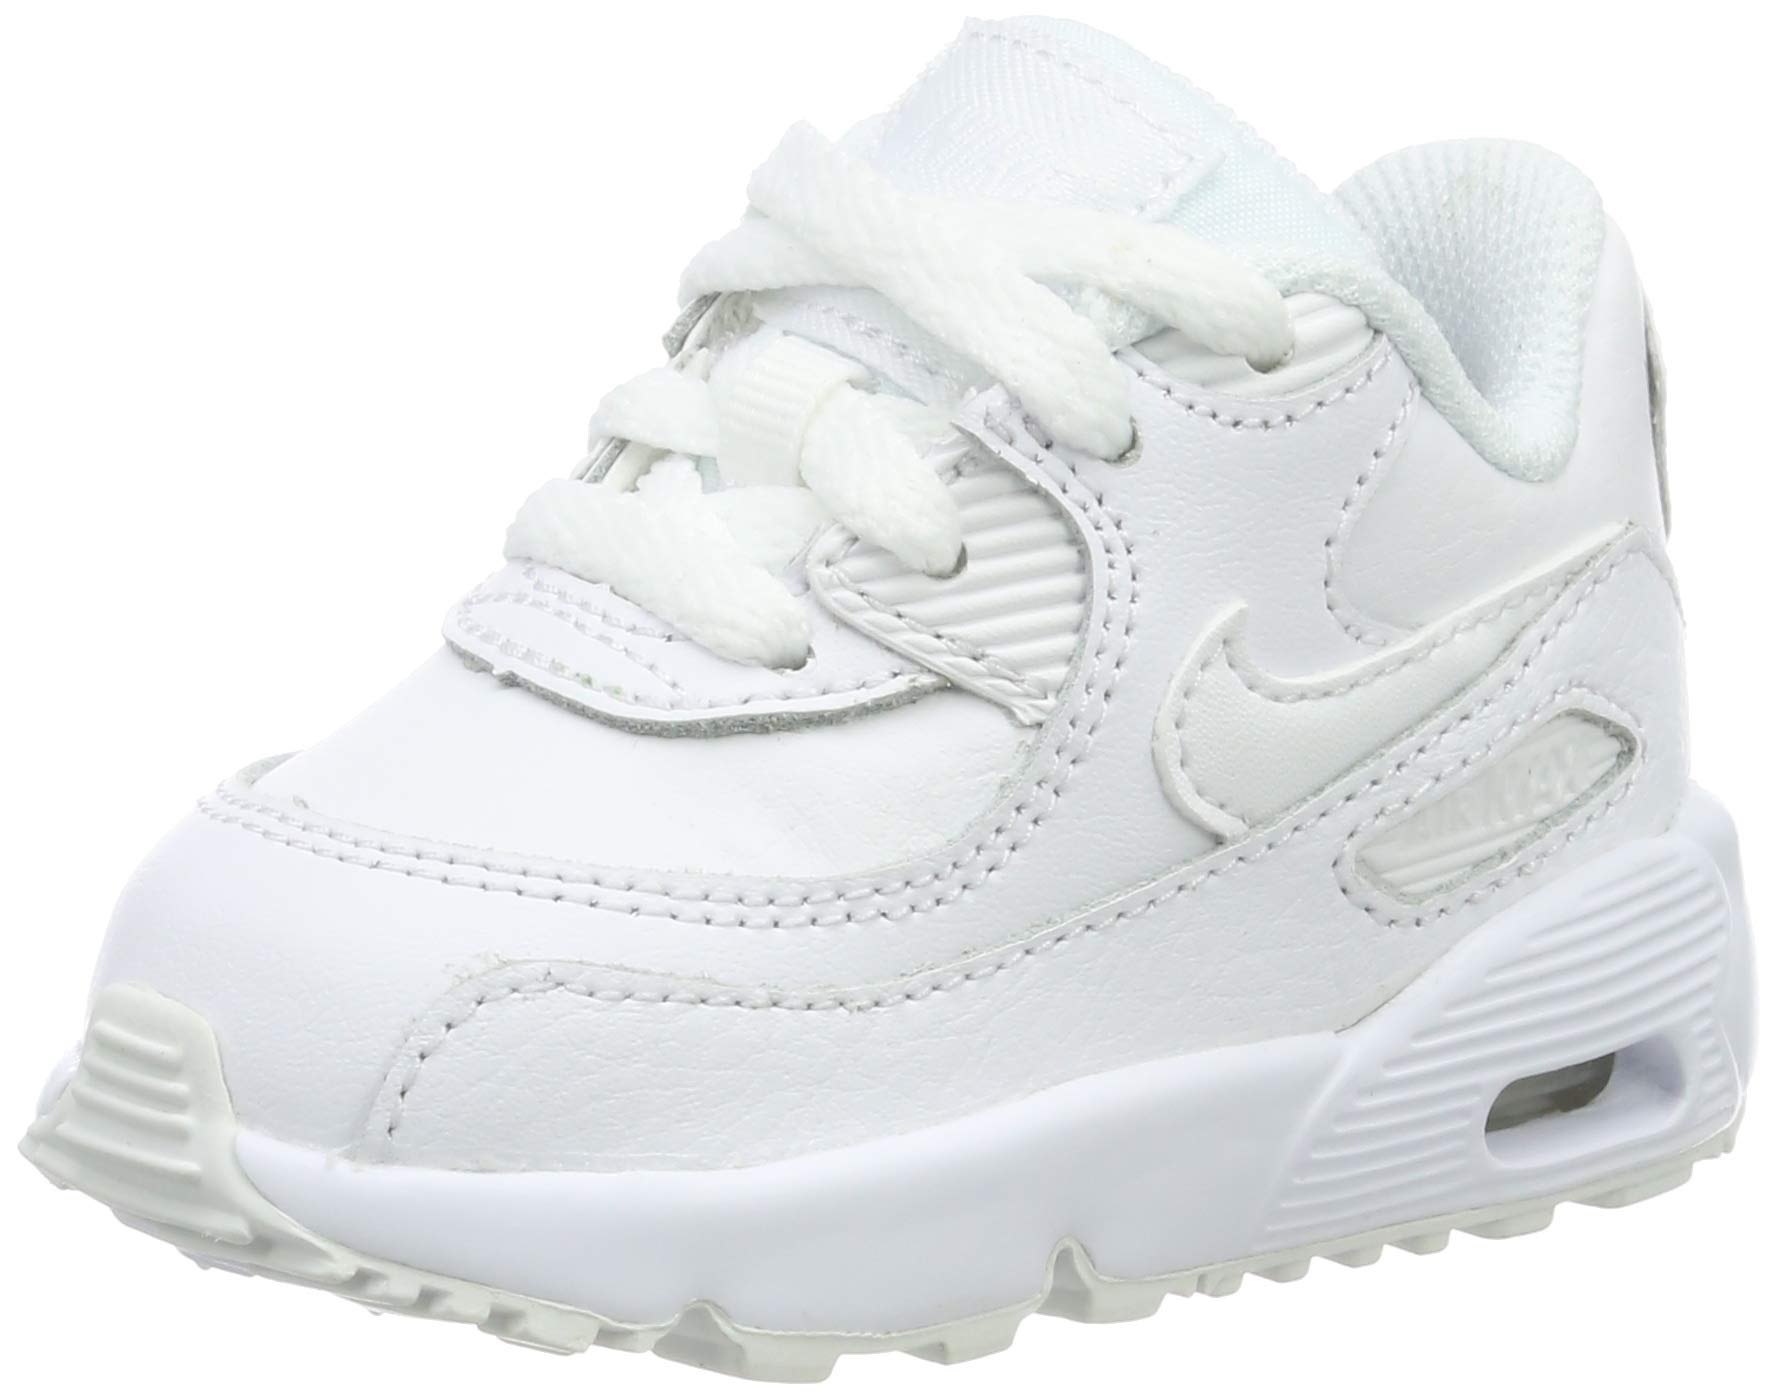 NIKE Boy's Air Max 90 Leather (TD) Shoes, White/White 6C